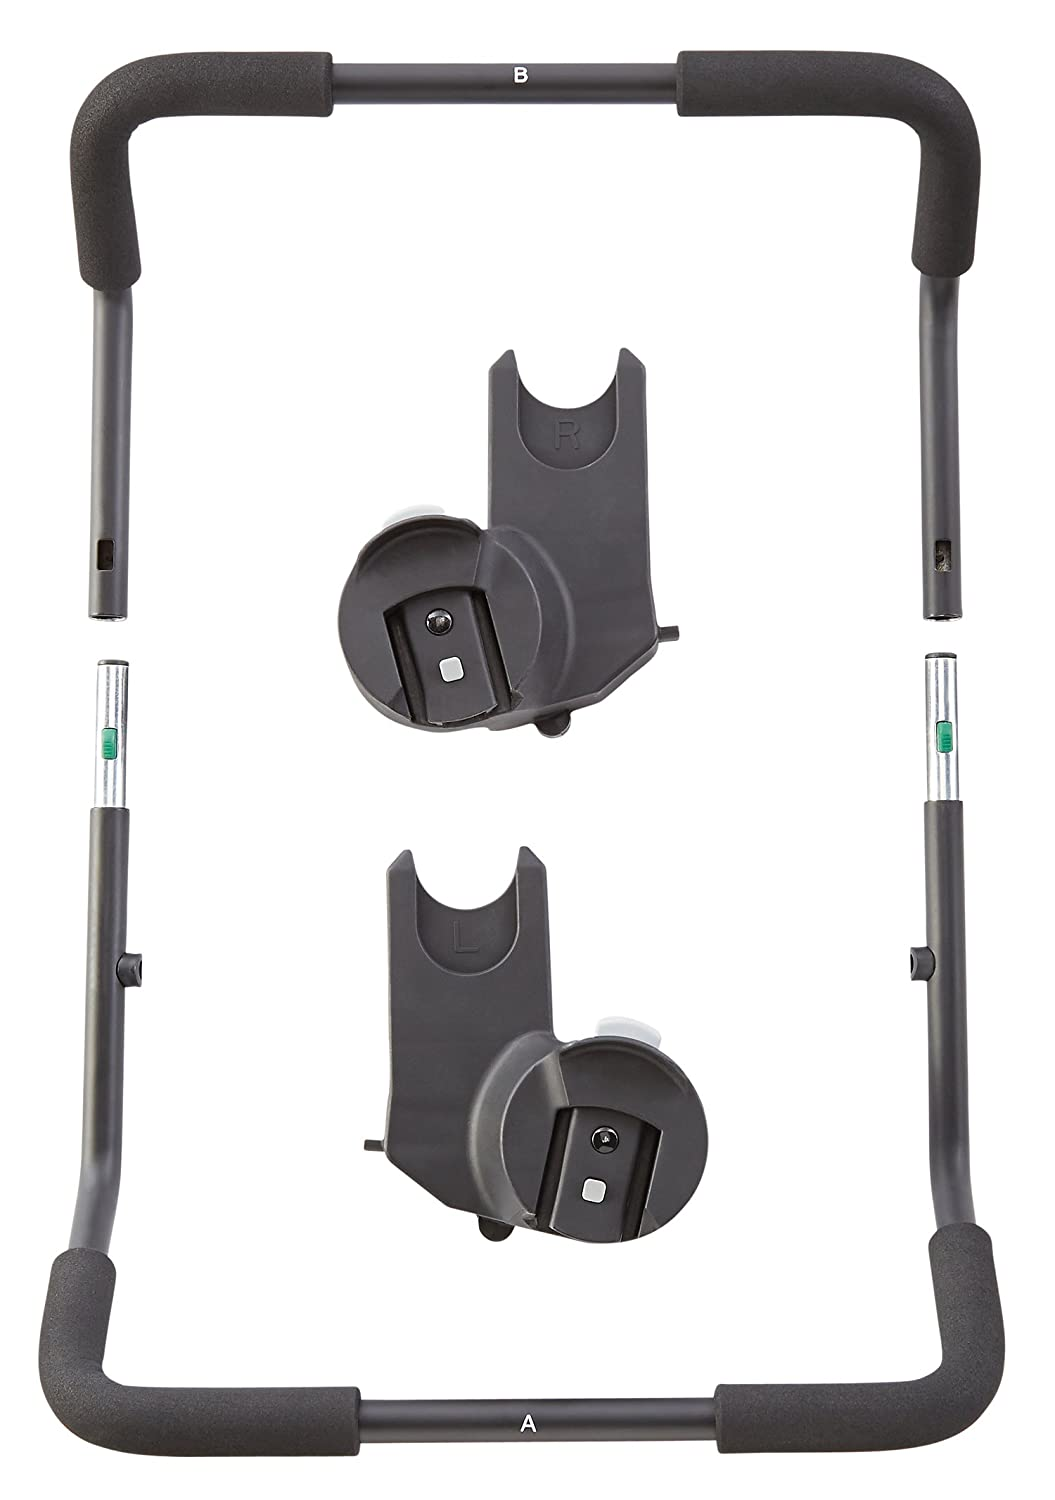 openbox baby jogger car seat adapter single for chicco and peg perego 1967361 ebay. Black Bedroom Furniture Sets. Home Design Ideas